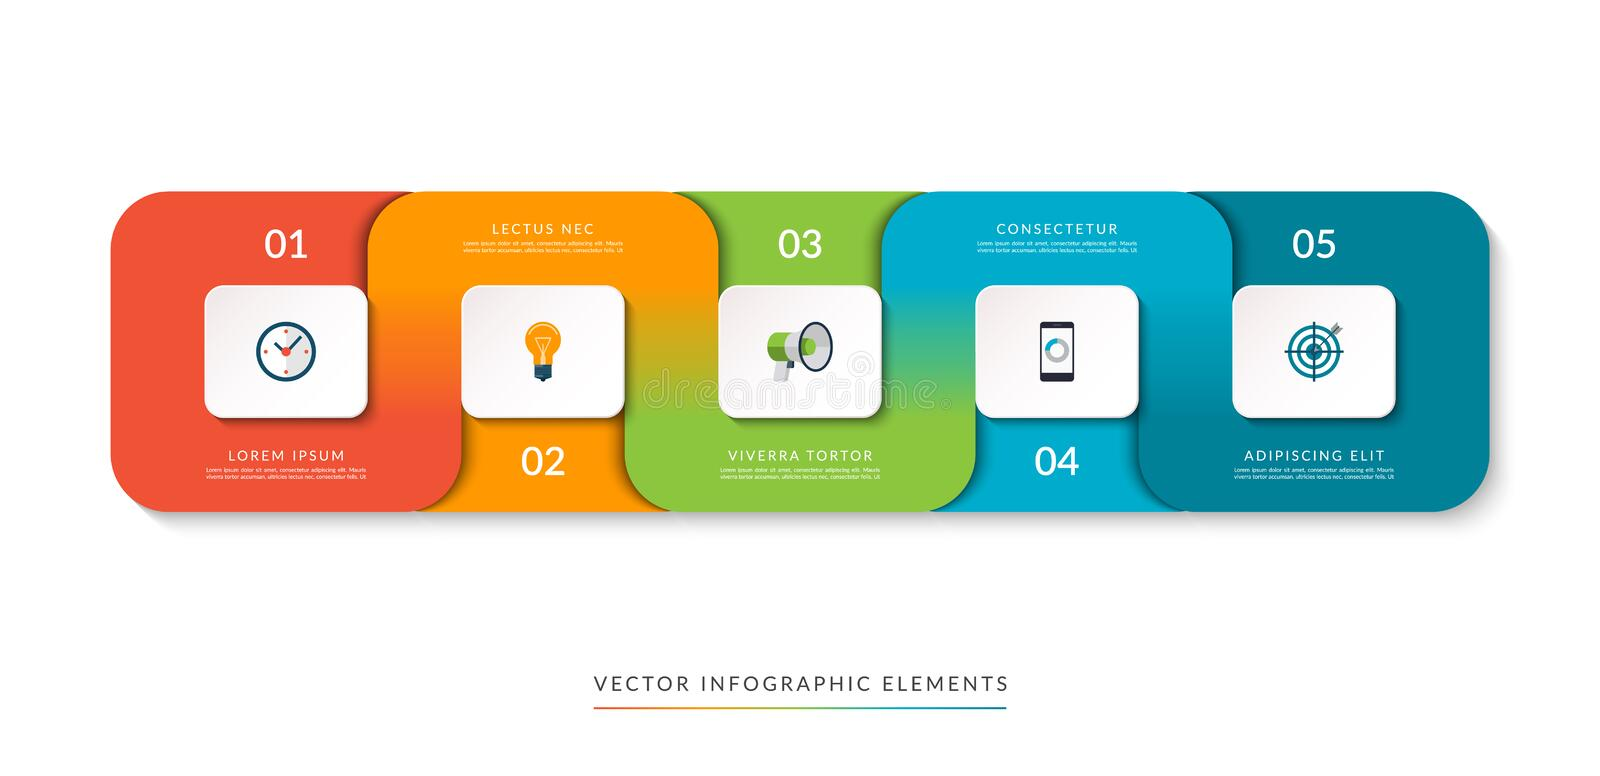 Infographic template of 5 connected parts vector illustration